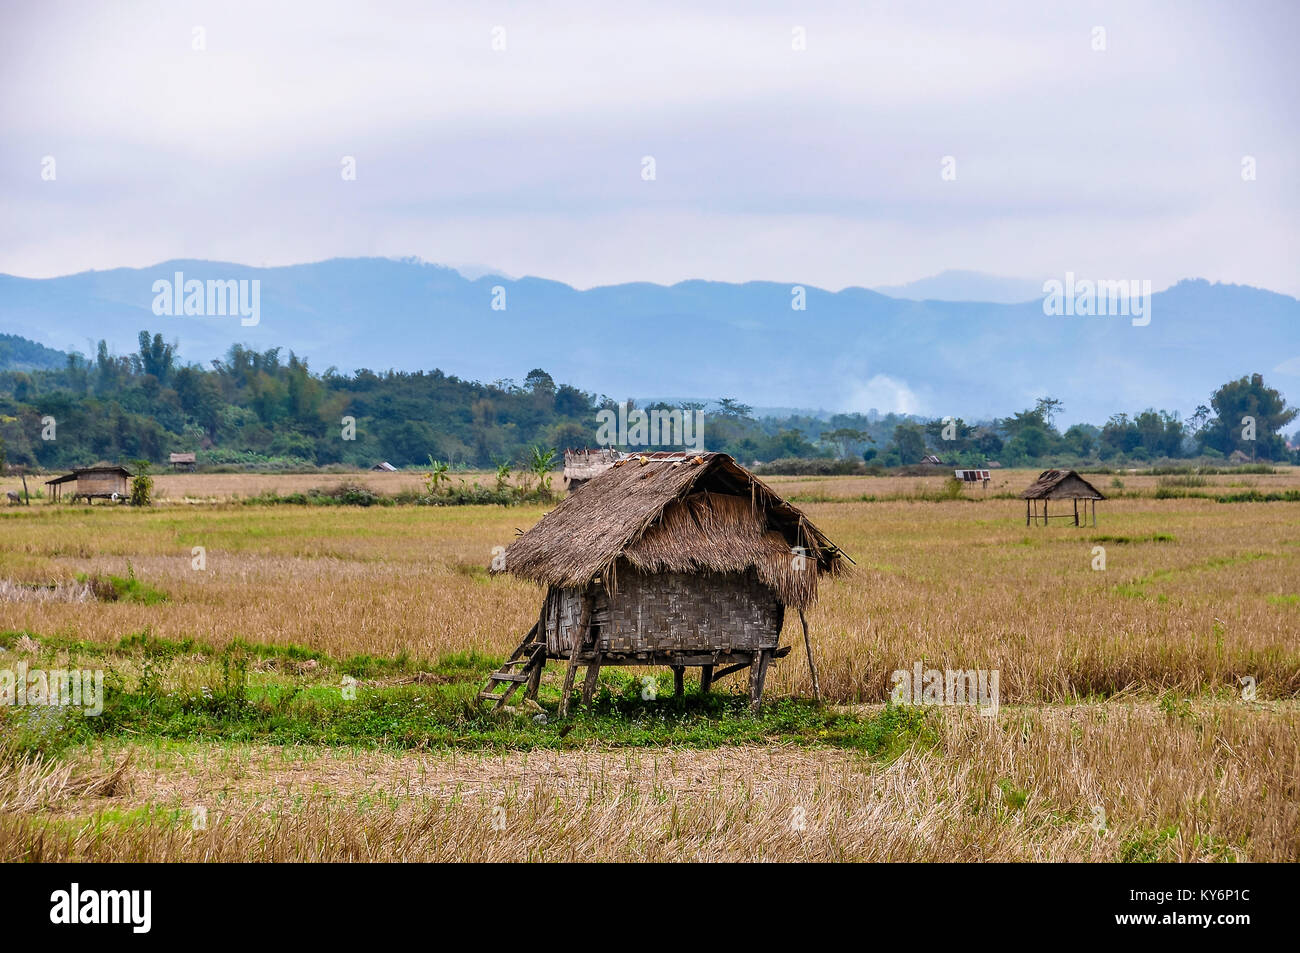 Hut in the countryside in the village Luang Nam Tha, Northern Laos - Stock Image